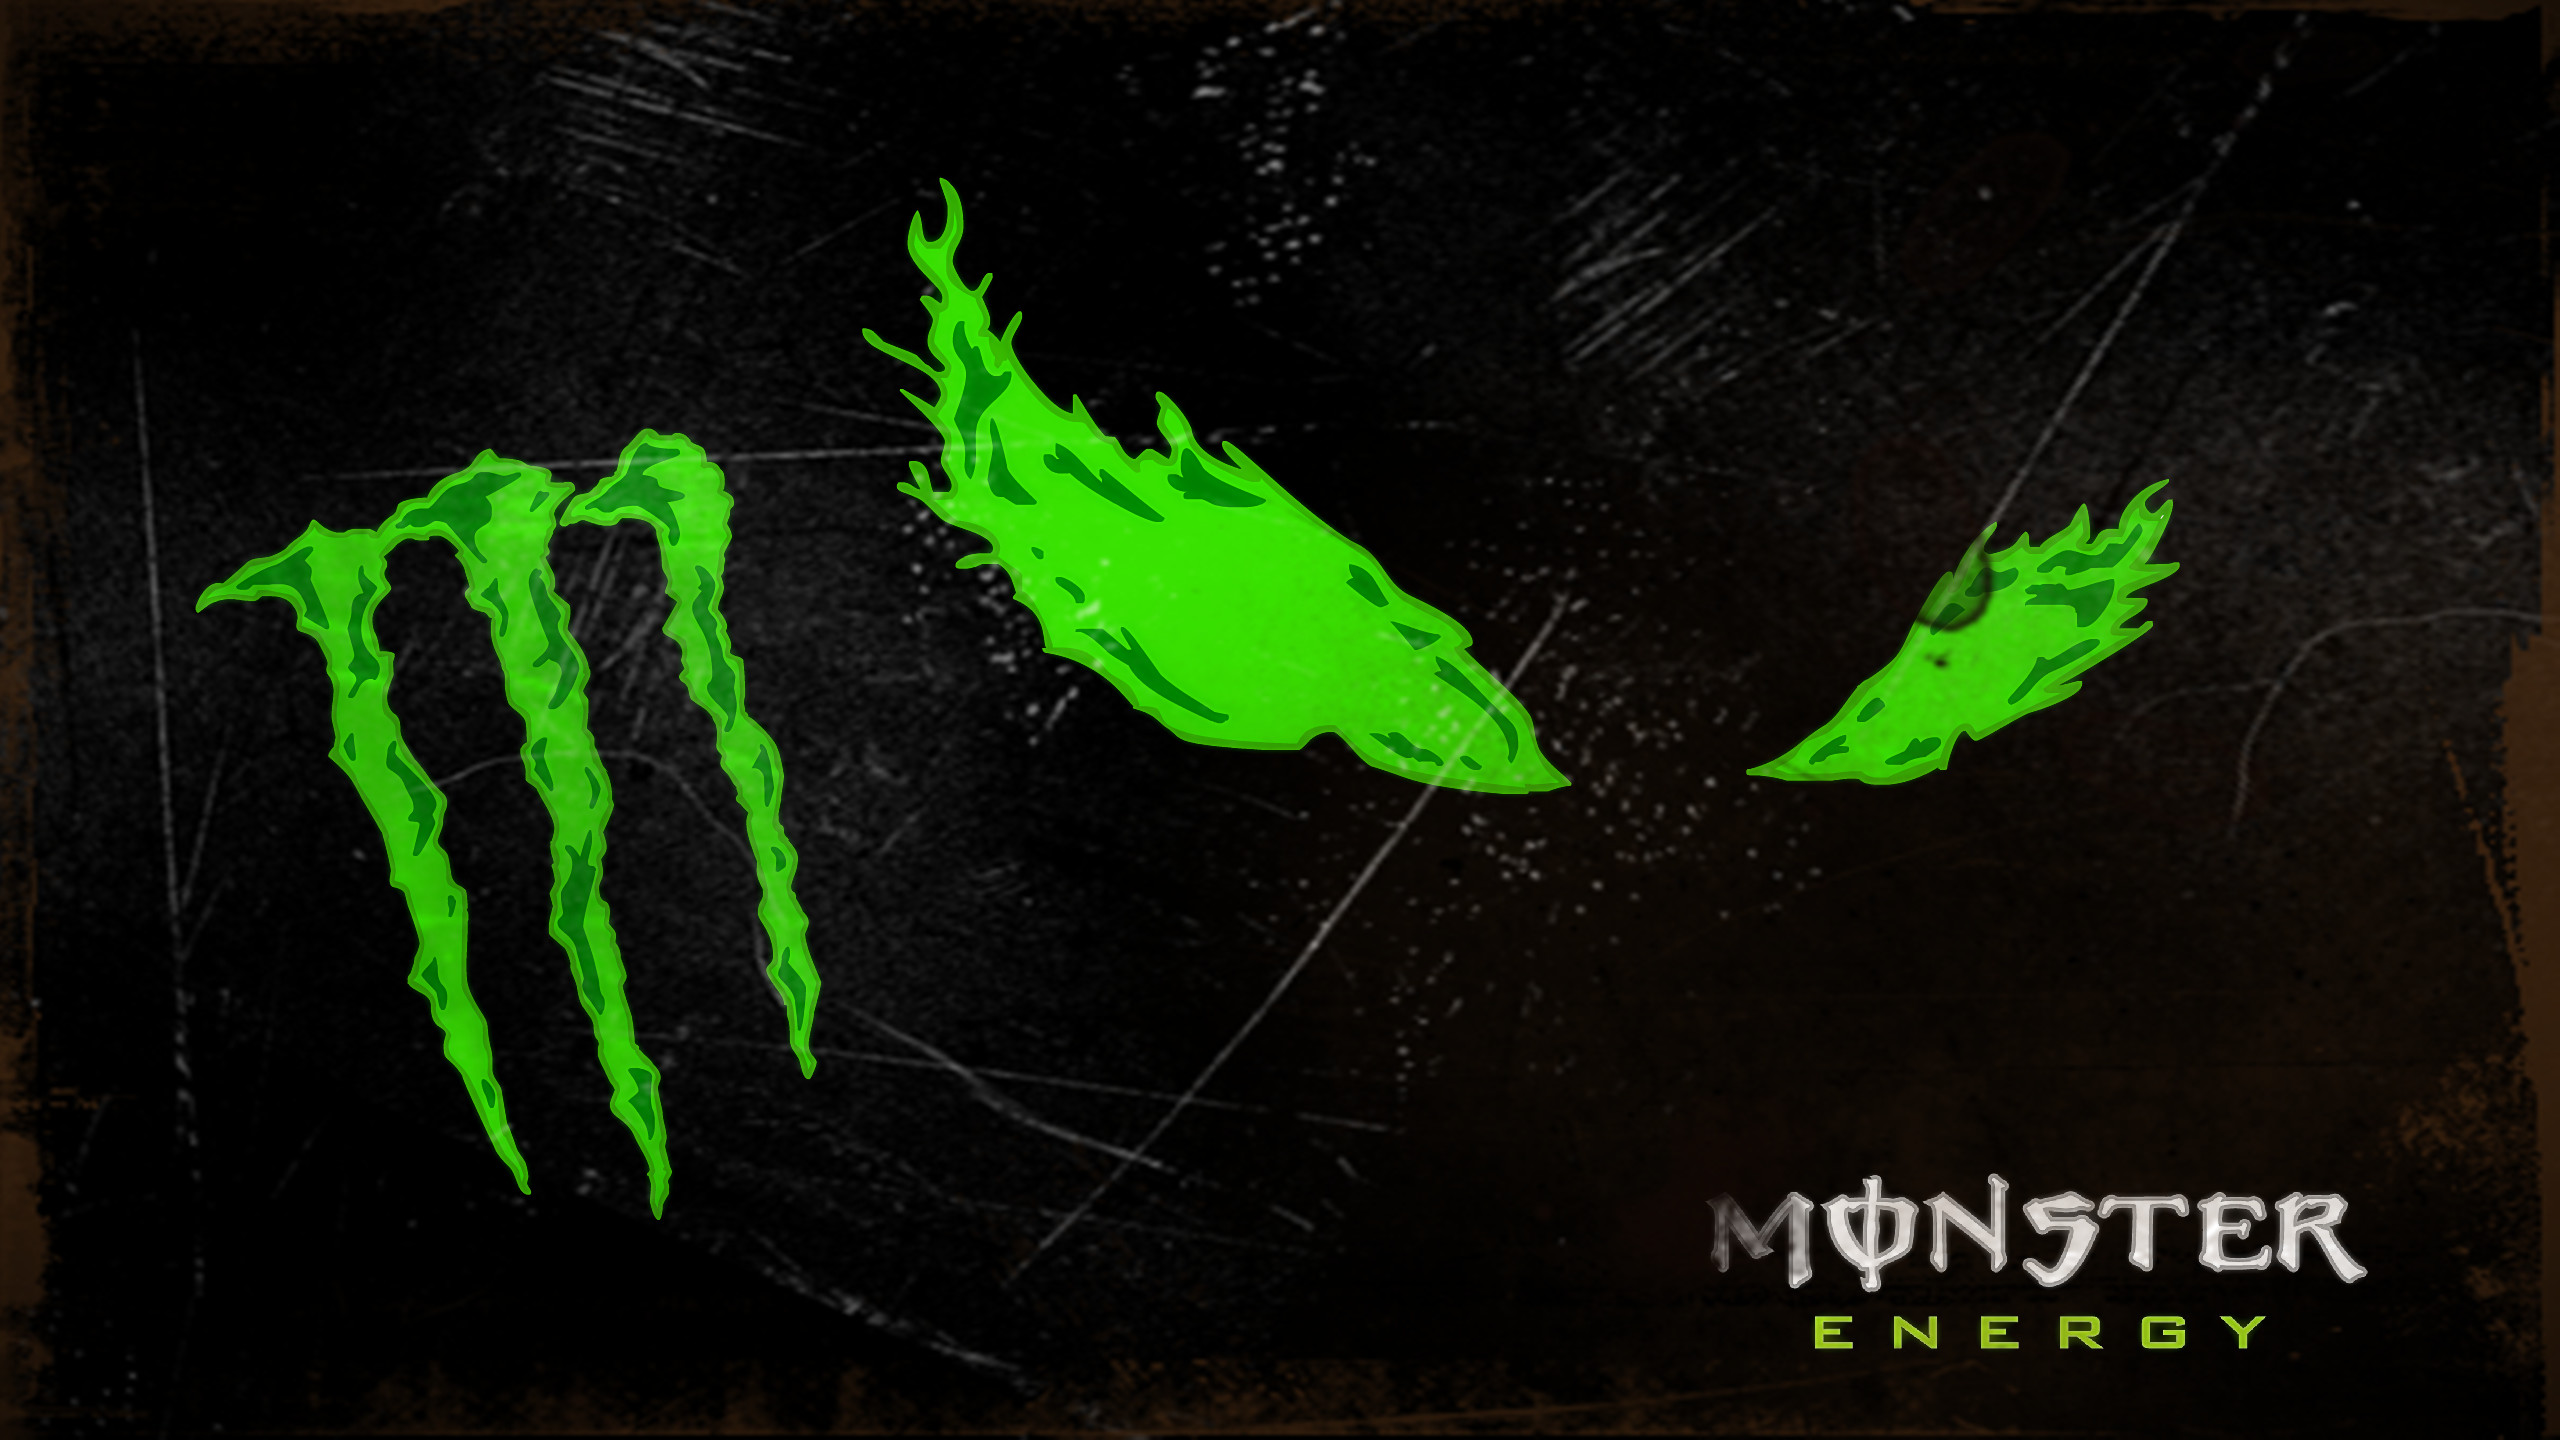 Res: 2560x1440, monster energy logo | Monster Energy HD Wallpaper | wallnen.com